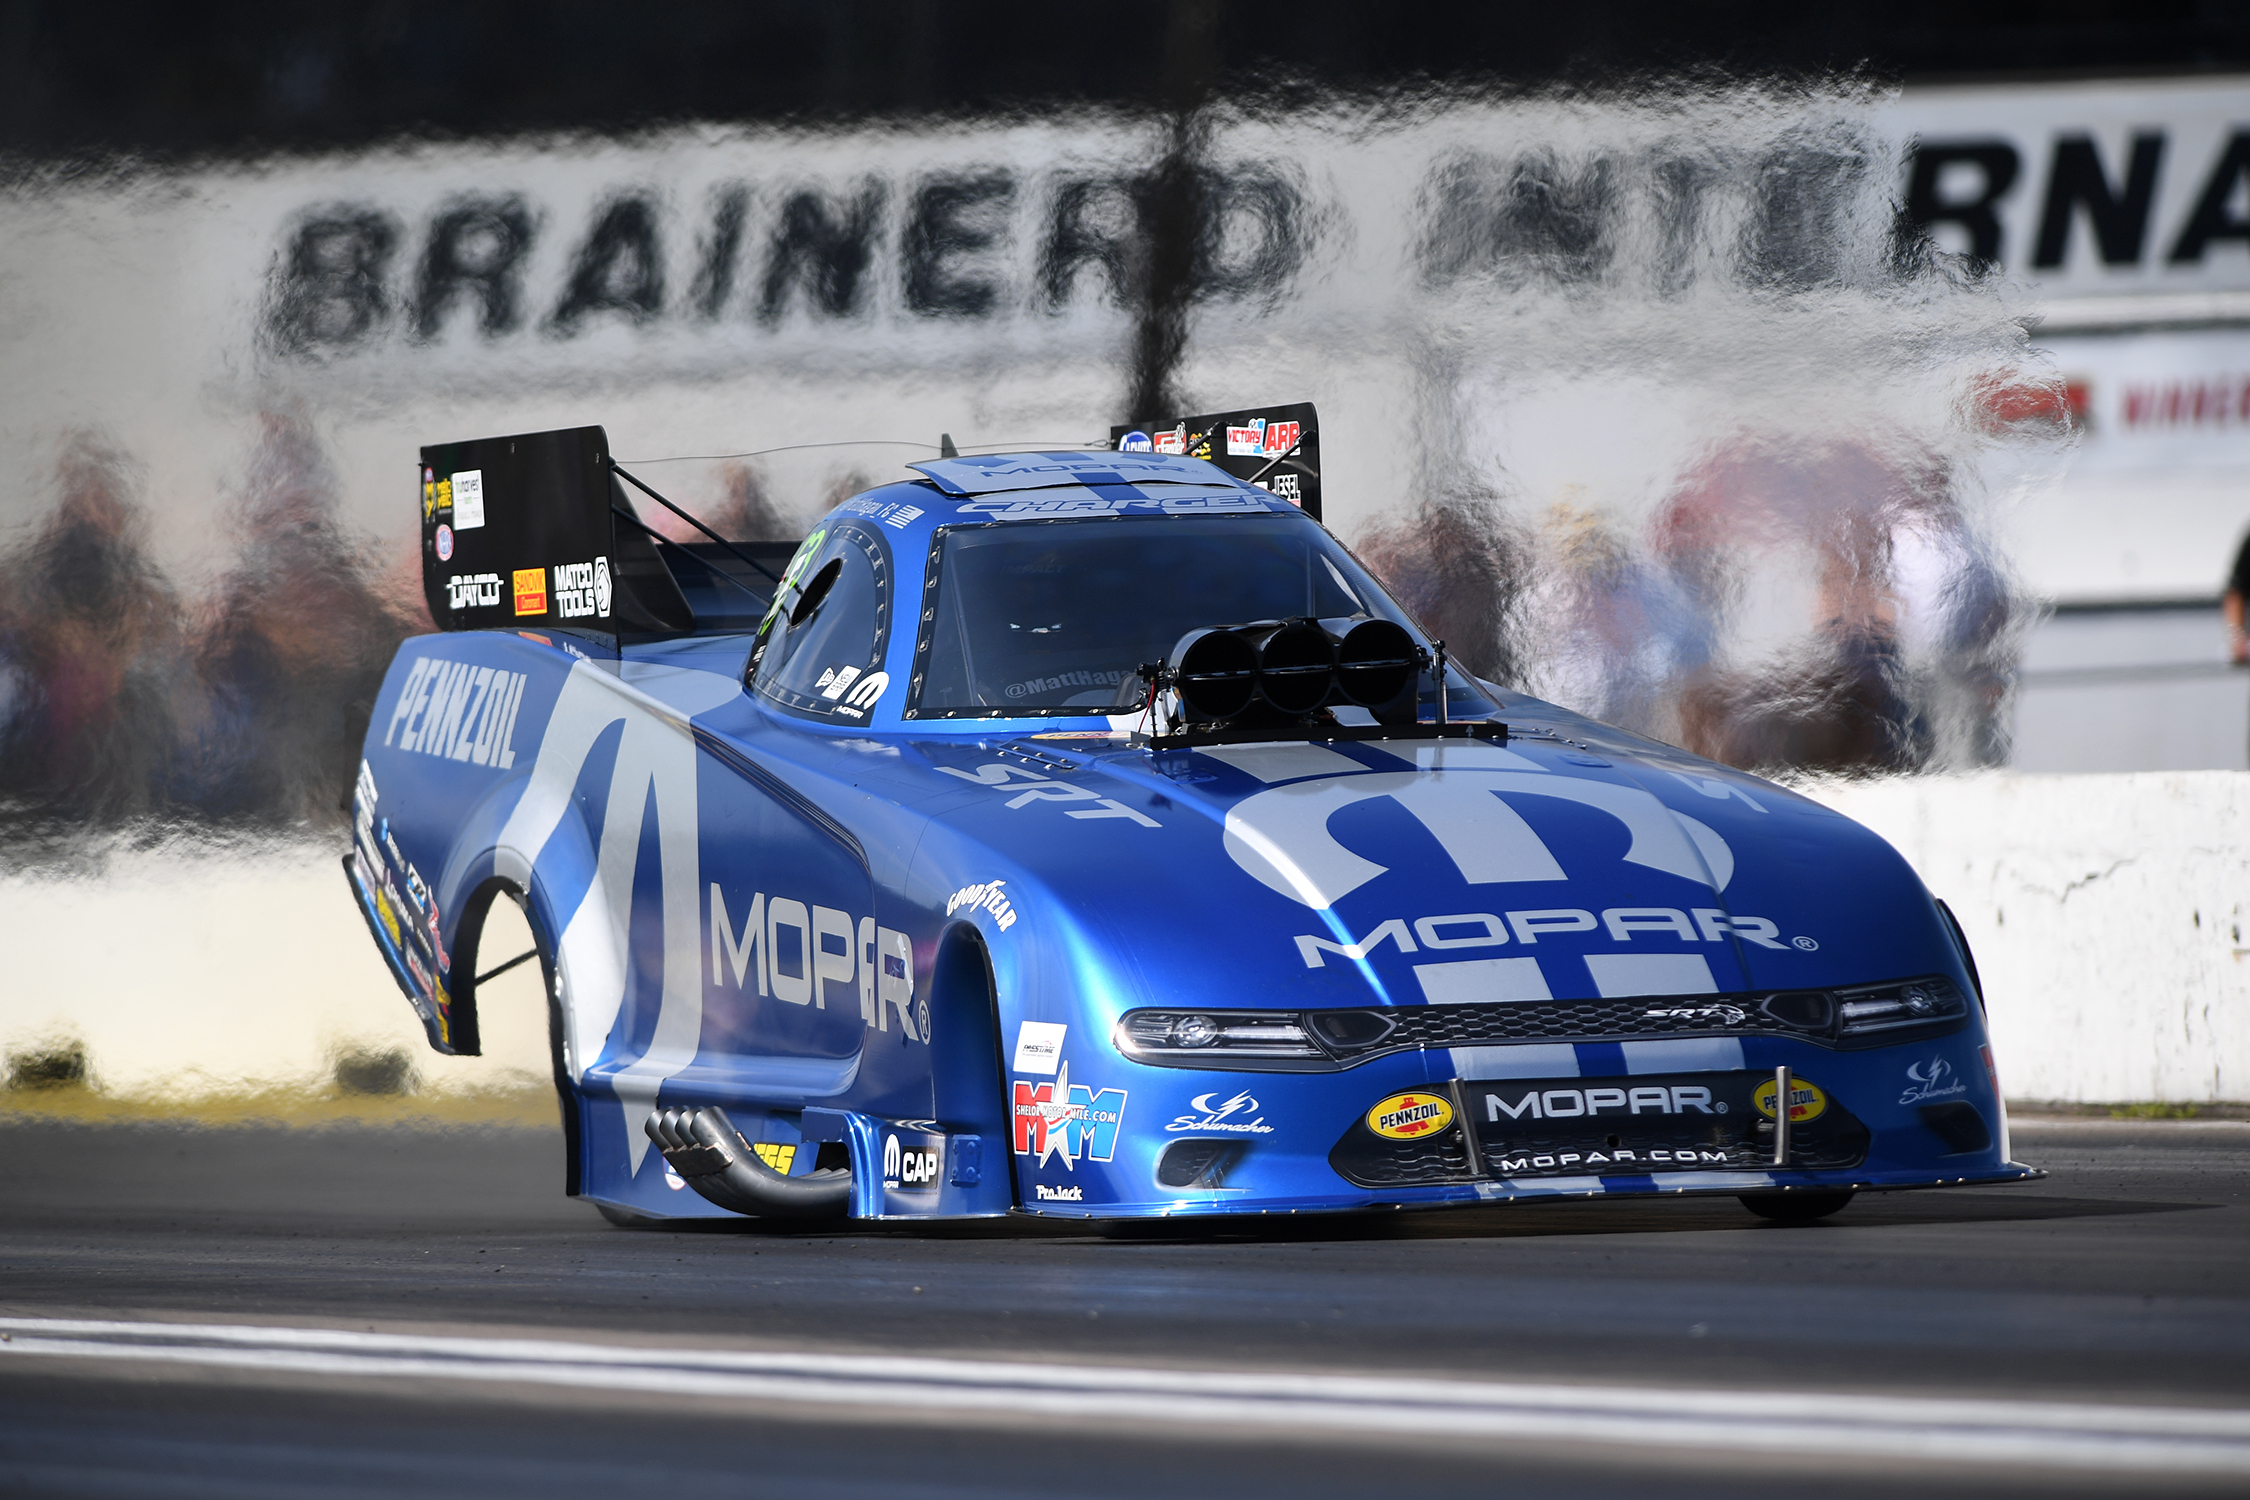 Funny Car pilot Matt Hagan racing on Saturday at the 2019 Lucas Oil NHRA Nationals